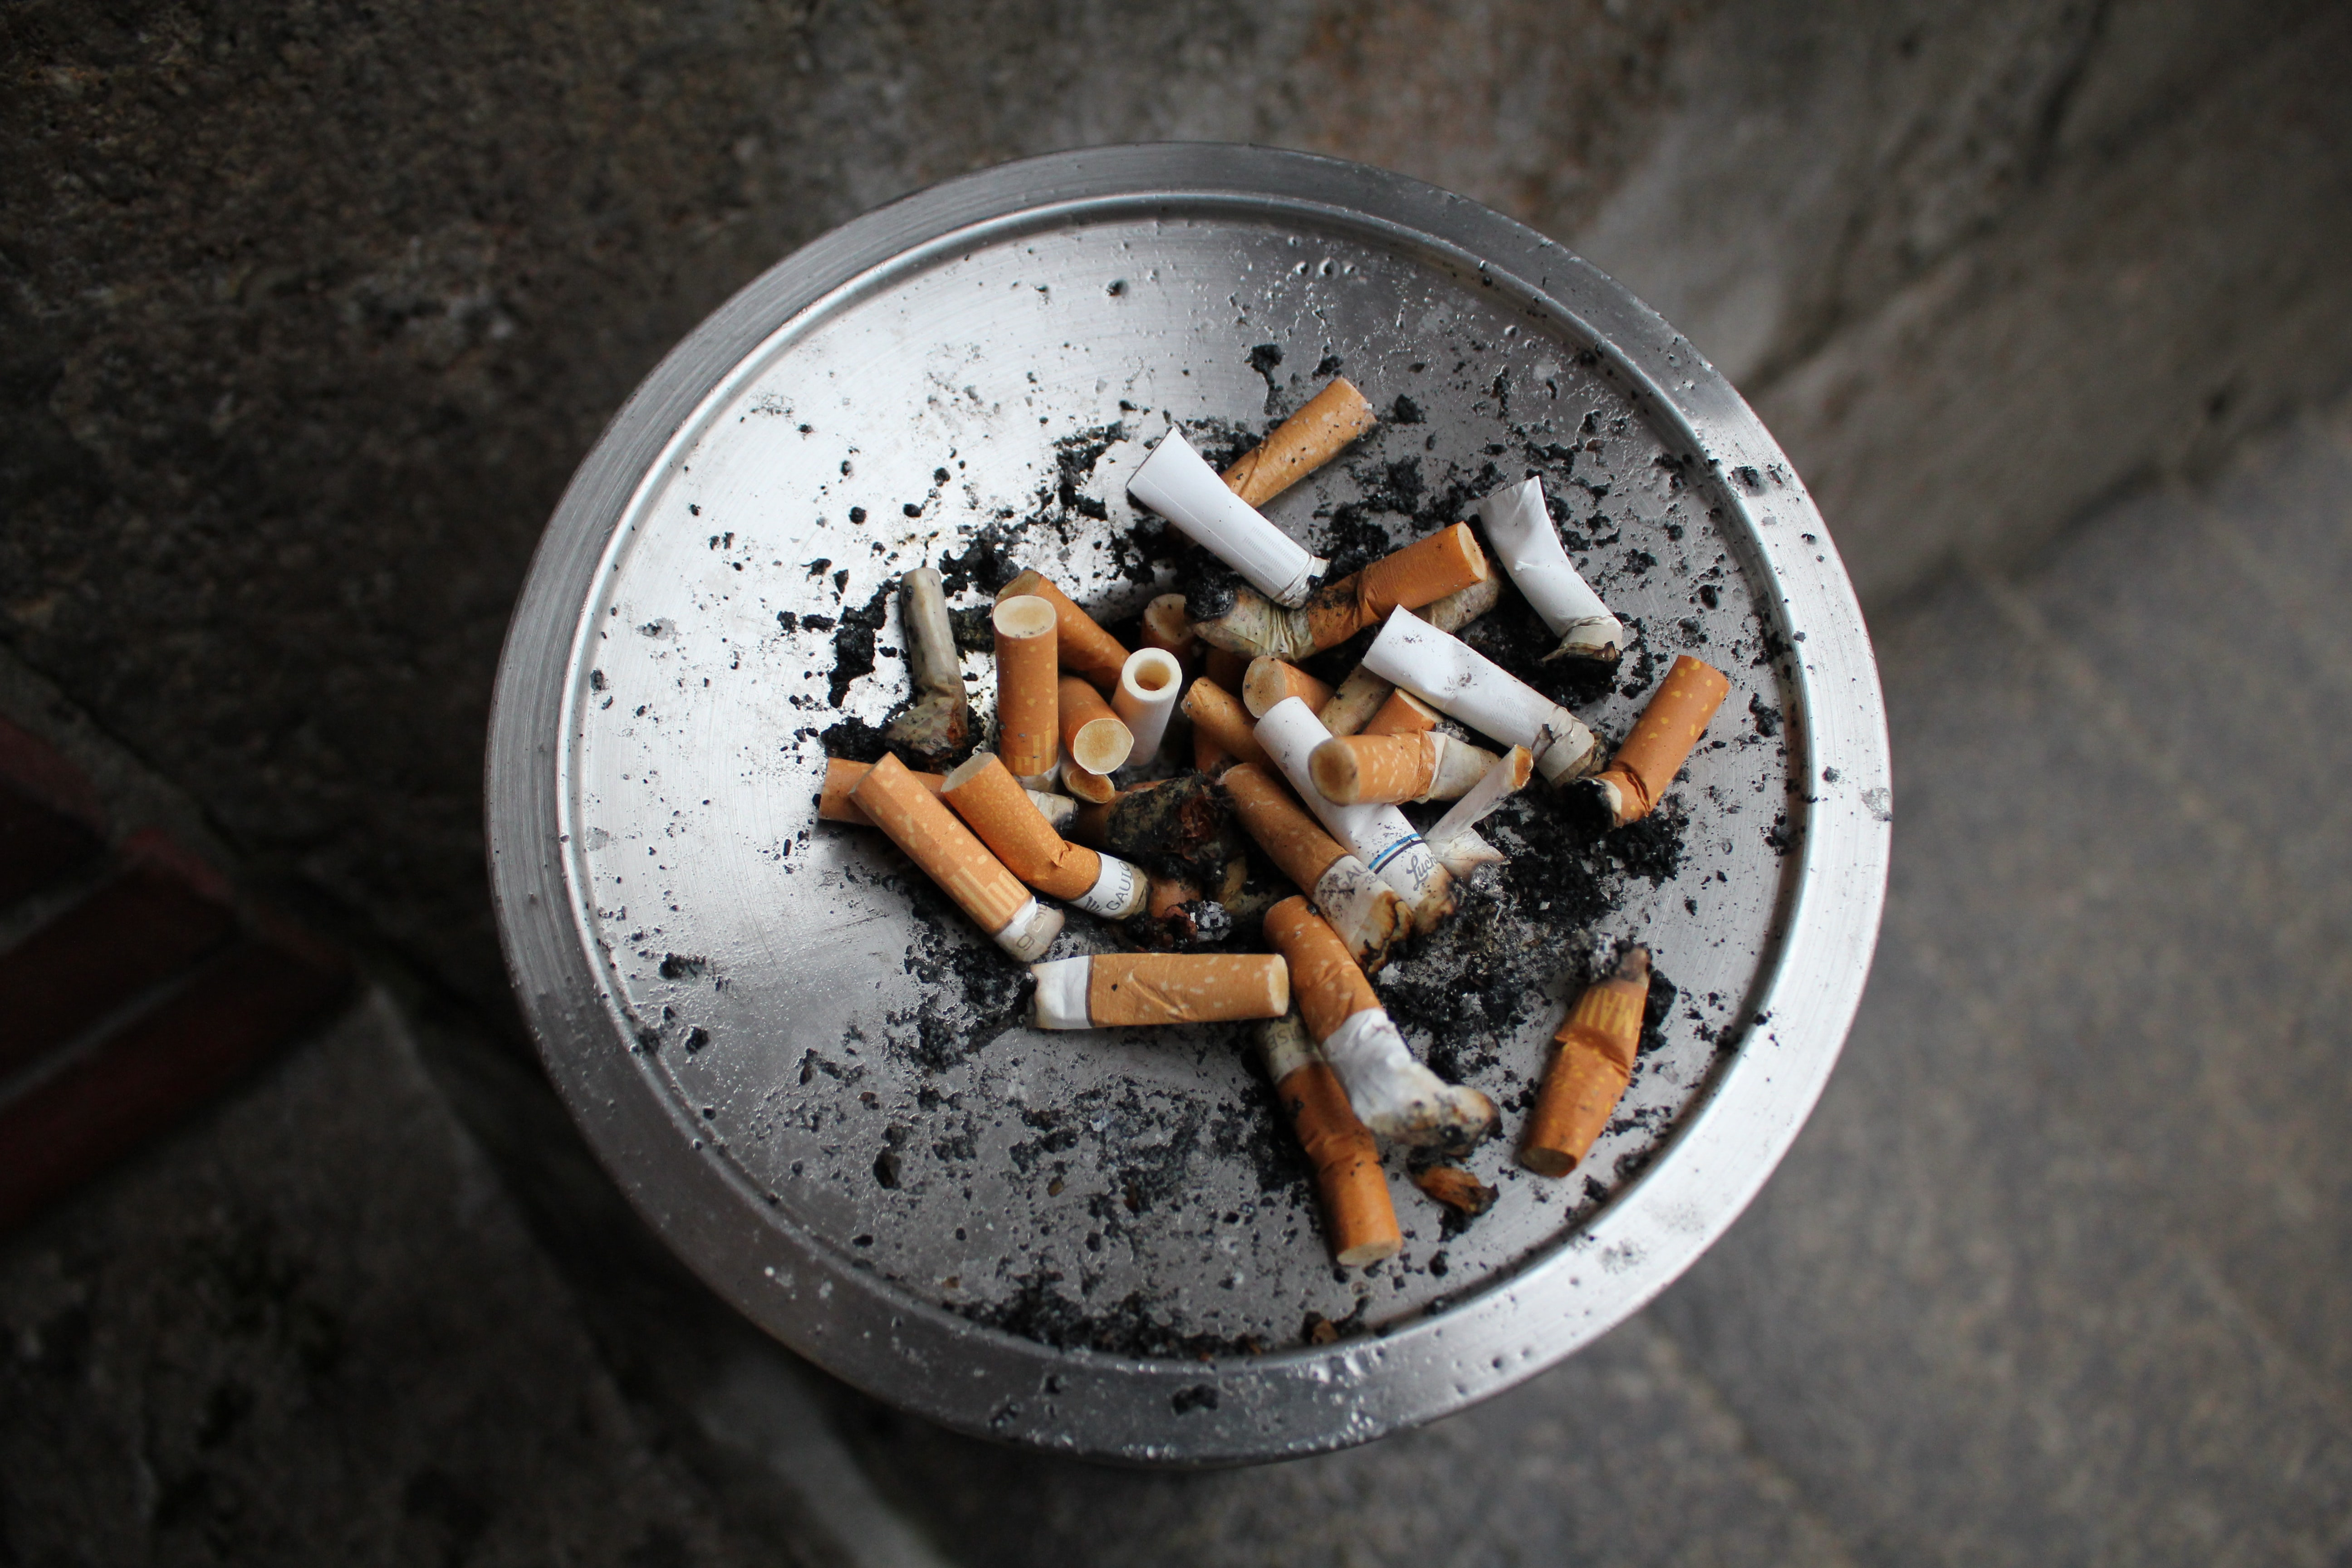 cigarette but on ashtray